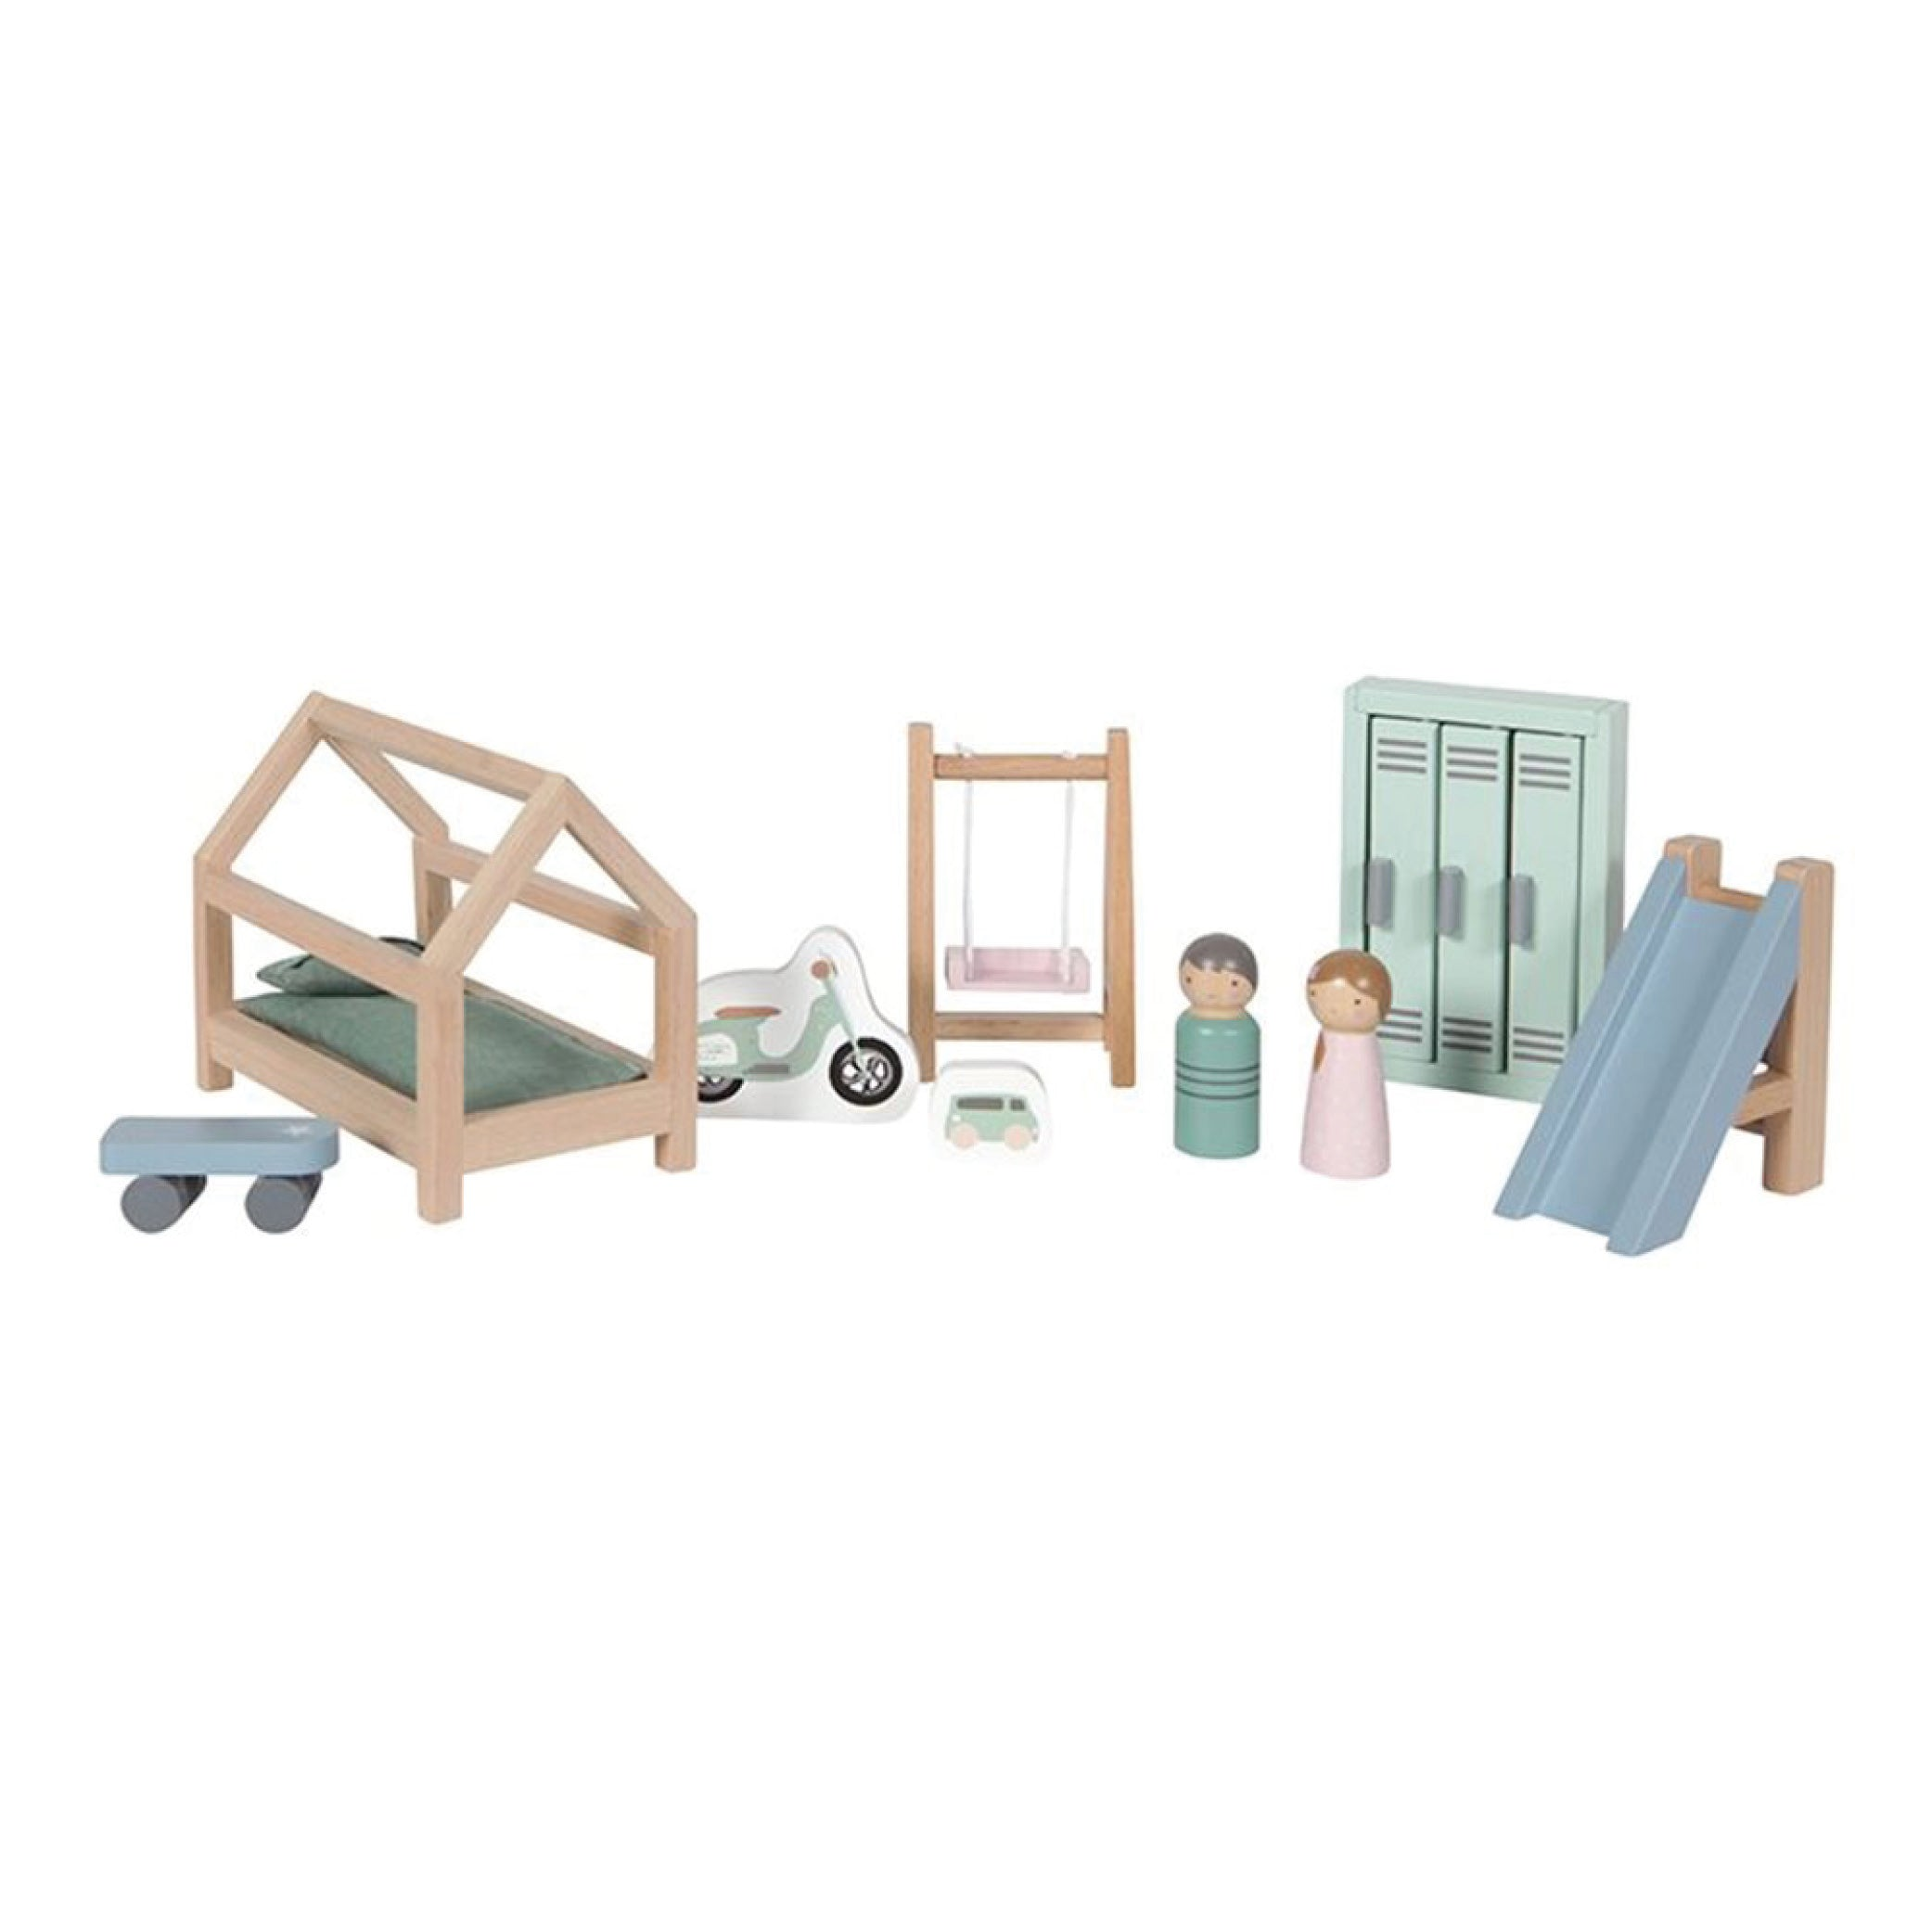 Doll's house Children's room playset - little dutch